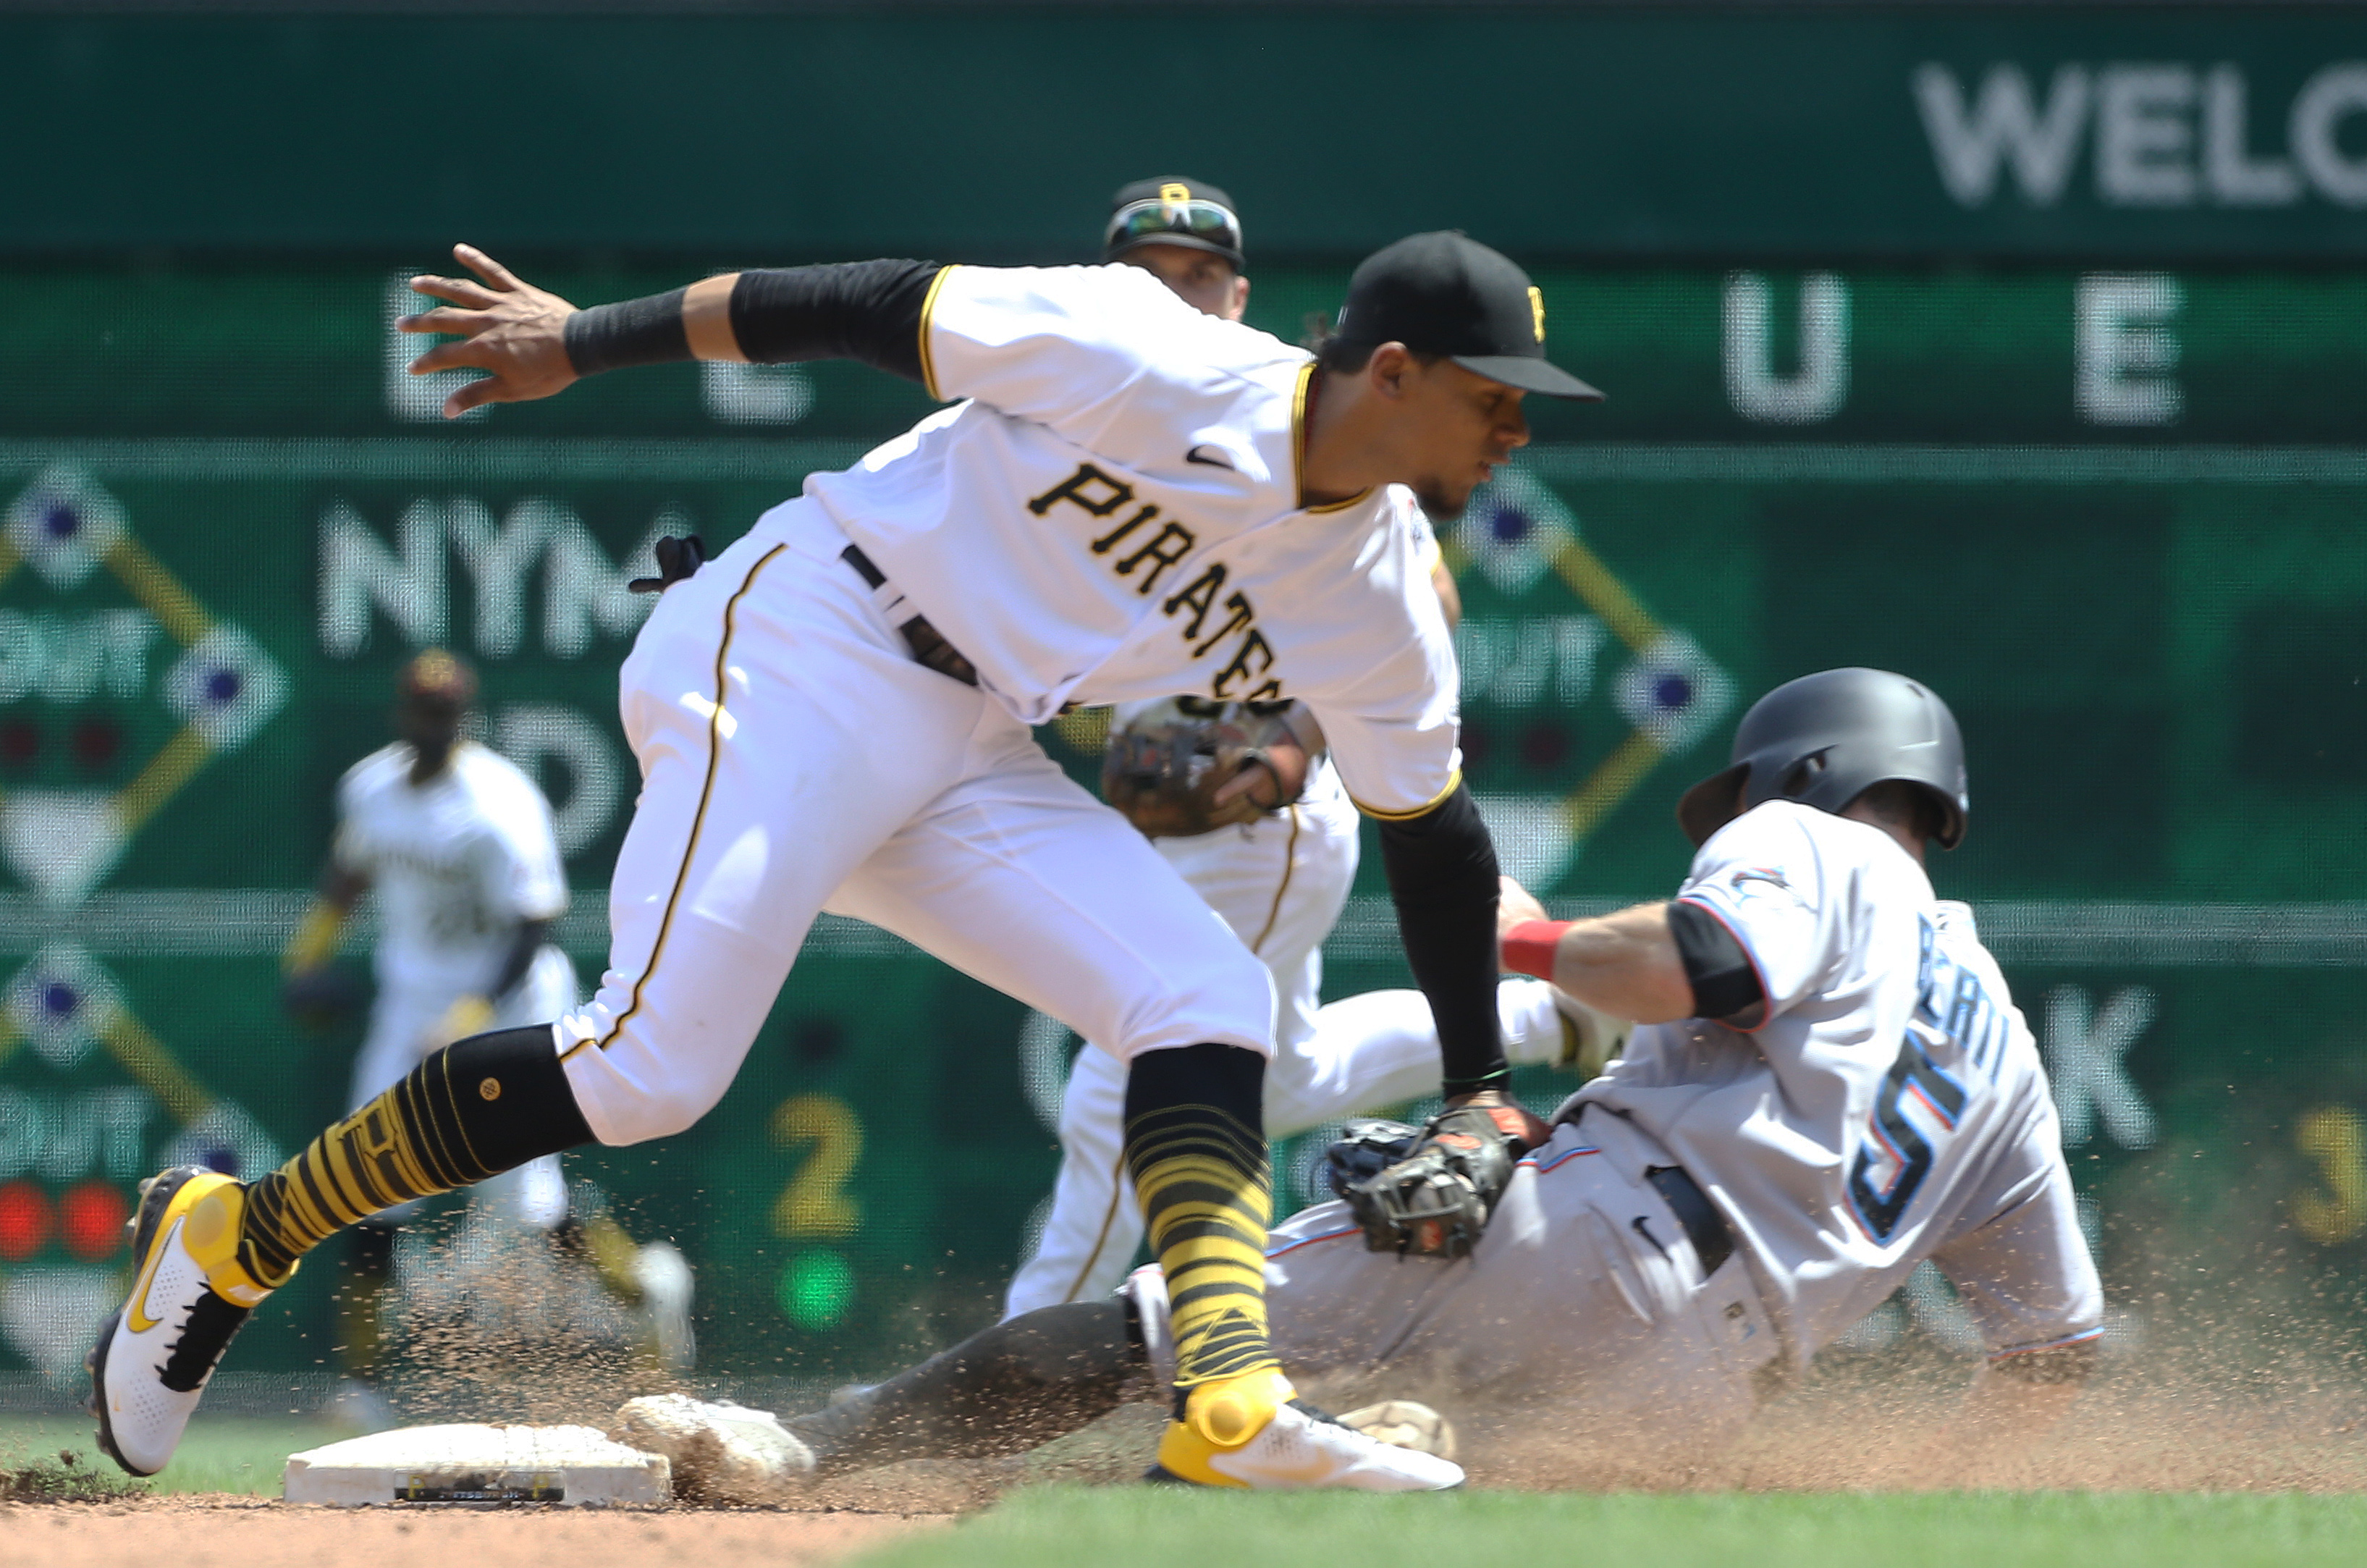 Pittsburgh Pirates shortstop Erik Gonzalez (2) tags Miami Marlins second baseman Jon Berti (5) out at second base on a steal attempt during the sixth inning at PNC Park.